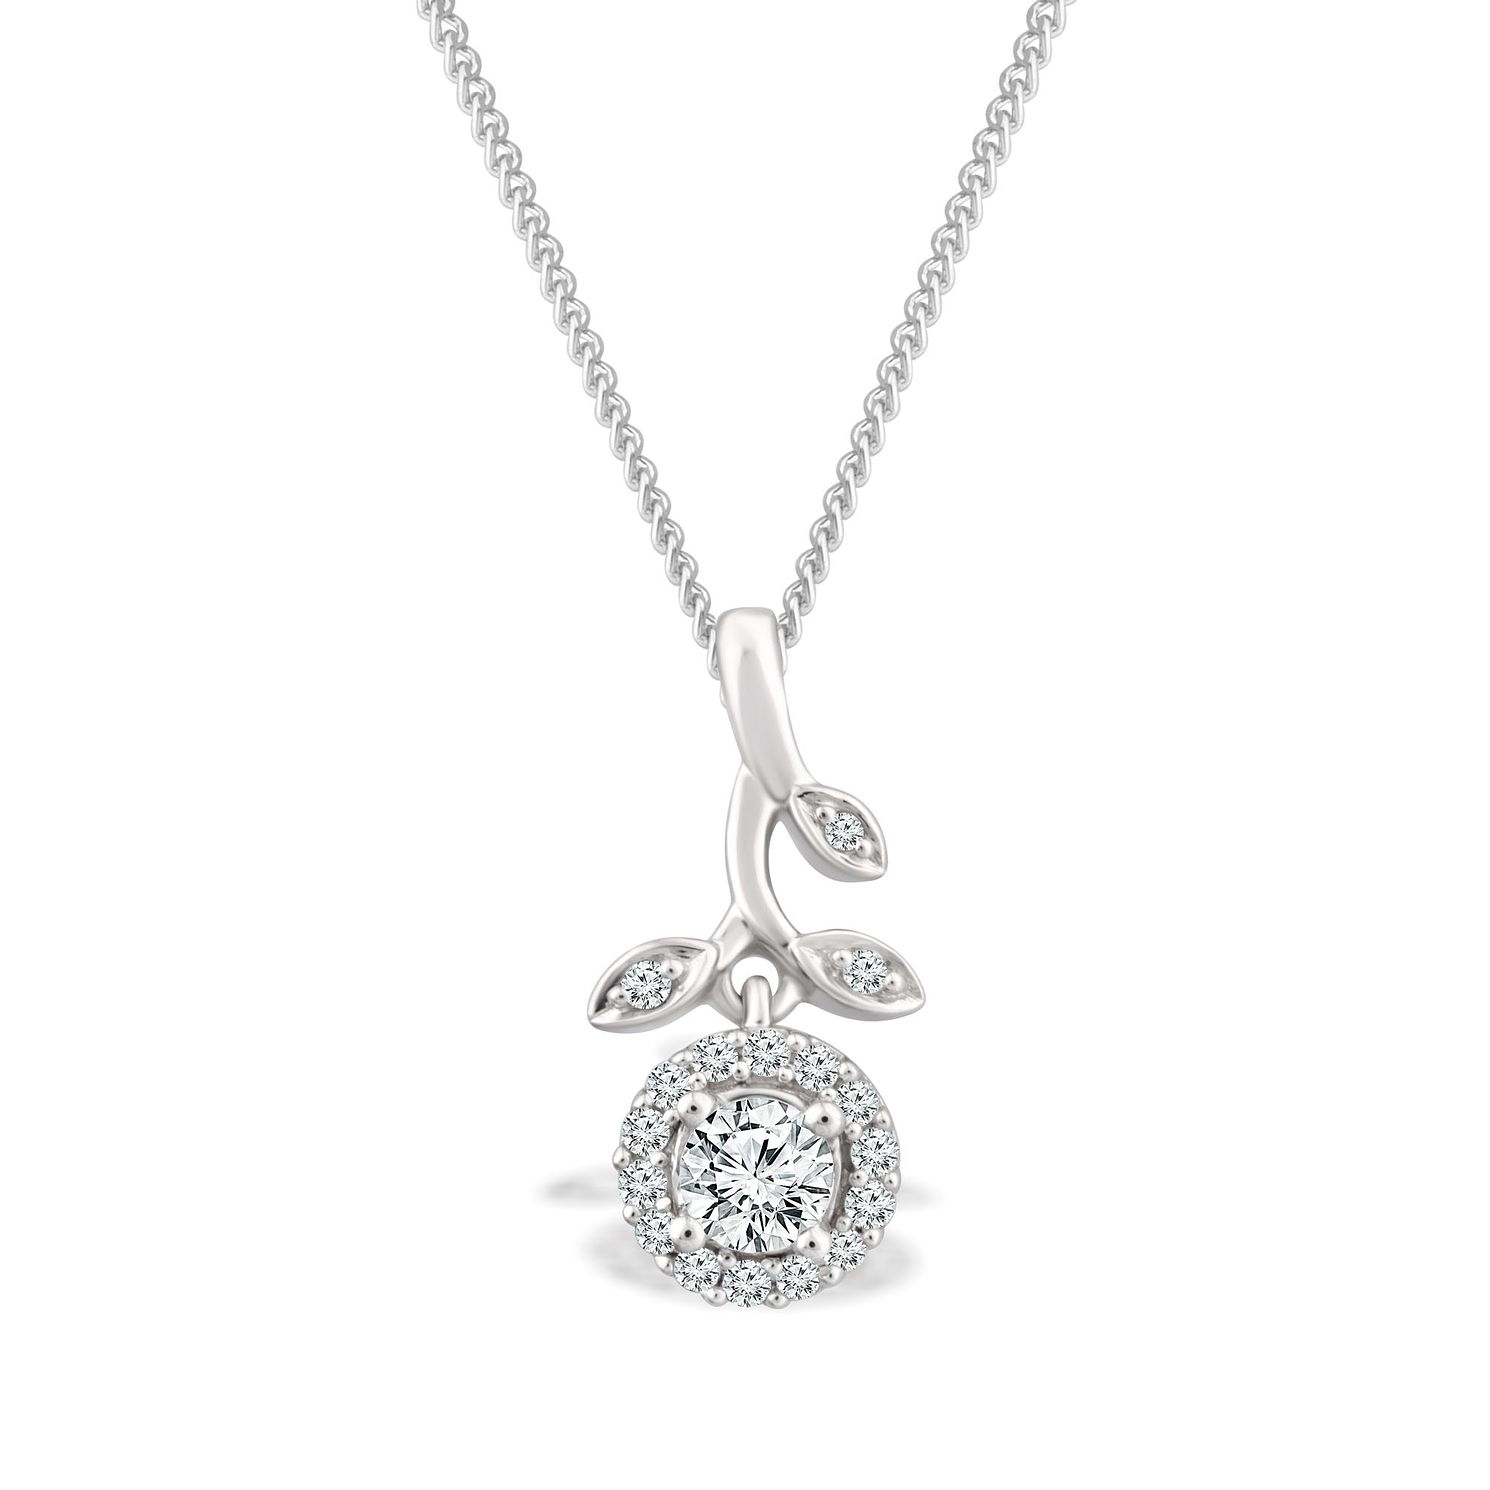 Emmy London 9ct White Gold 1/5ct Diamond Pendant - Product number 4570162